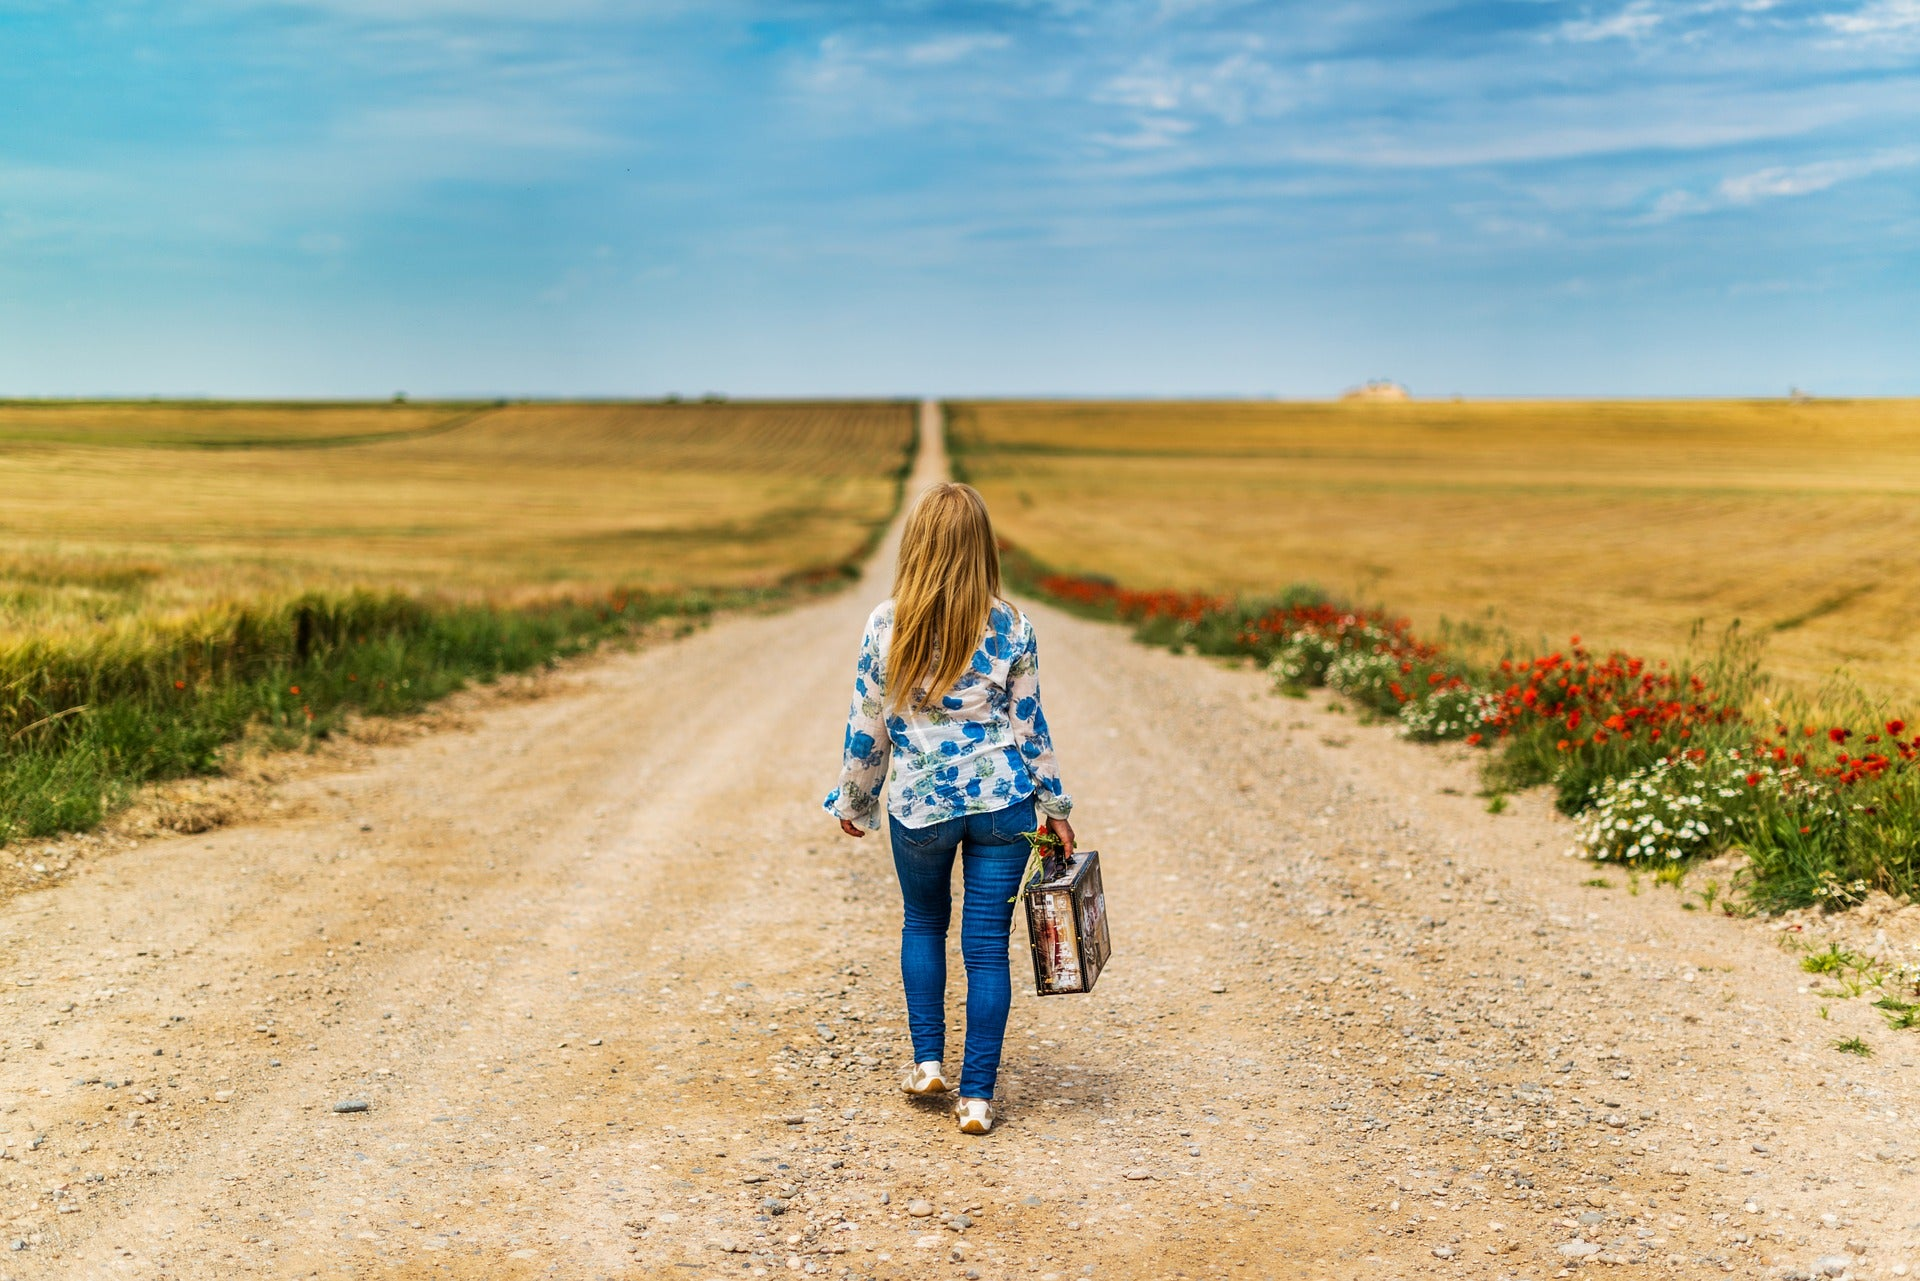 Girl walking on an open road